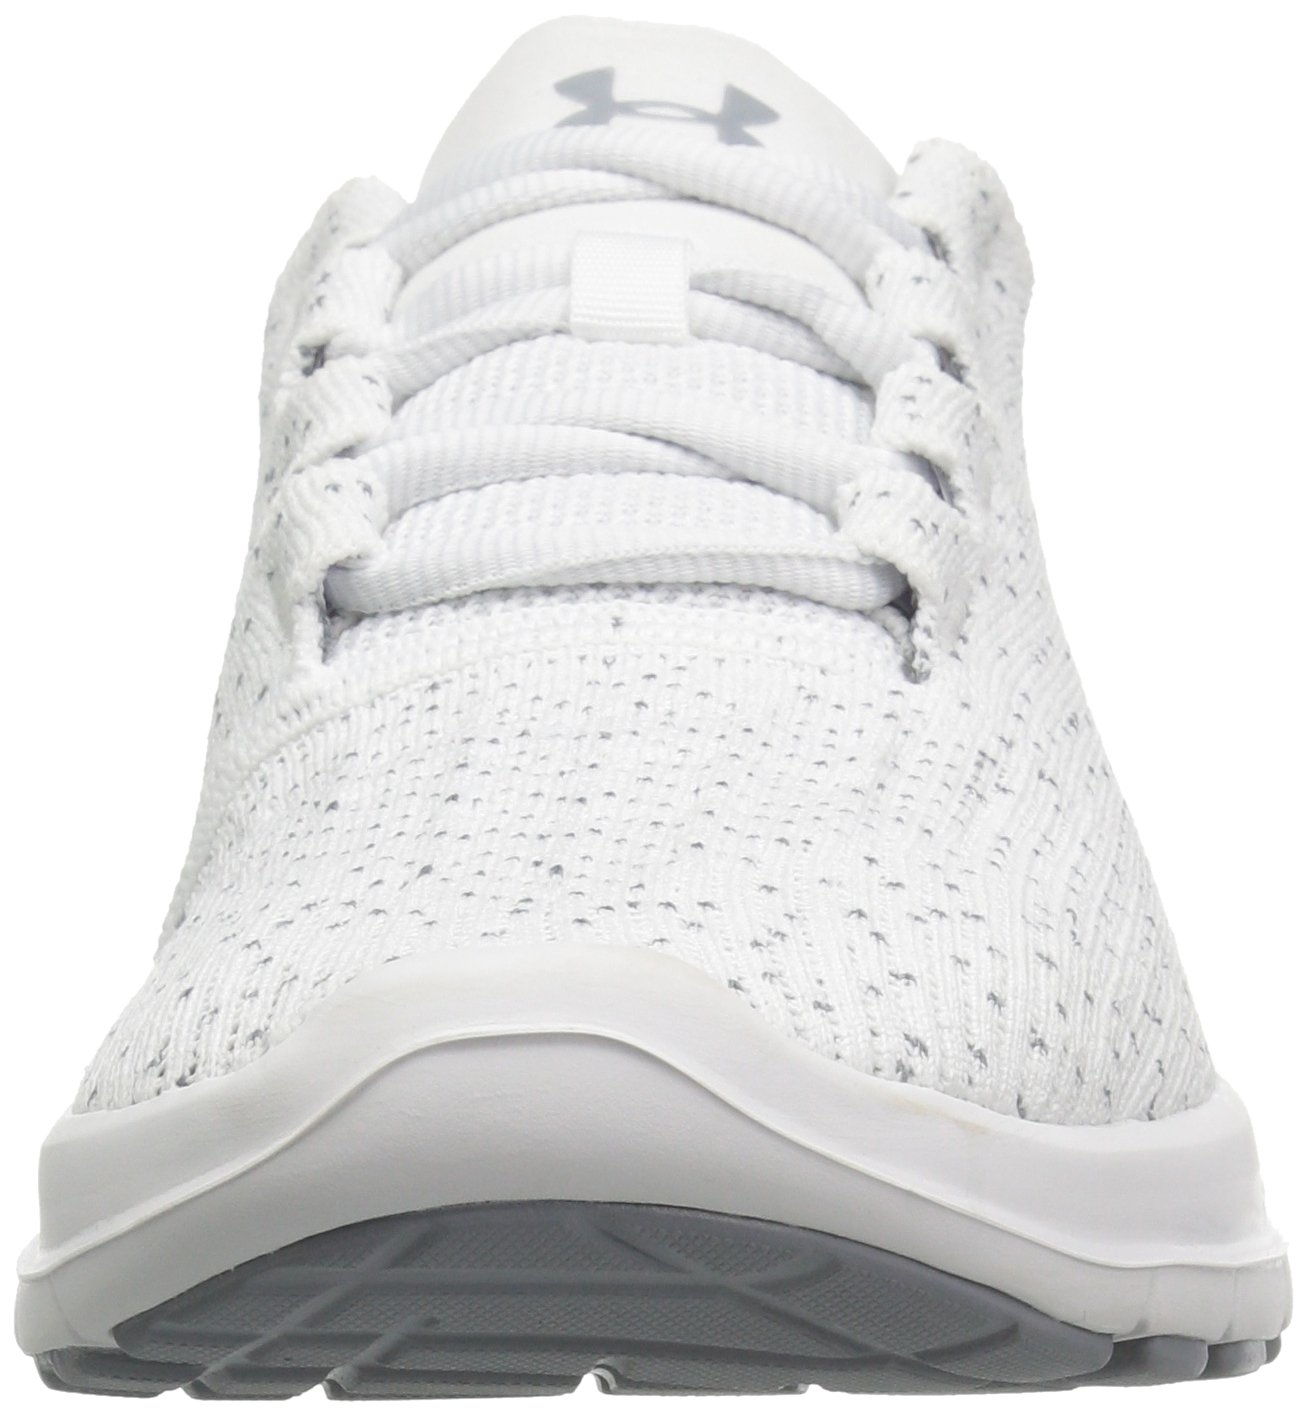 Under Armour Women's Shoe Speedform Slingride 1.1 Running Shoe Women's B01N9HQIR1 10 M US|White (100)/White e5eeba